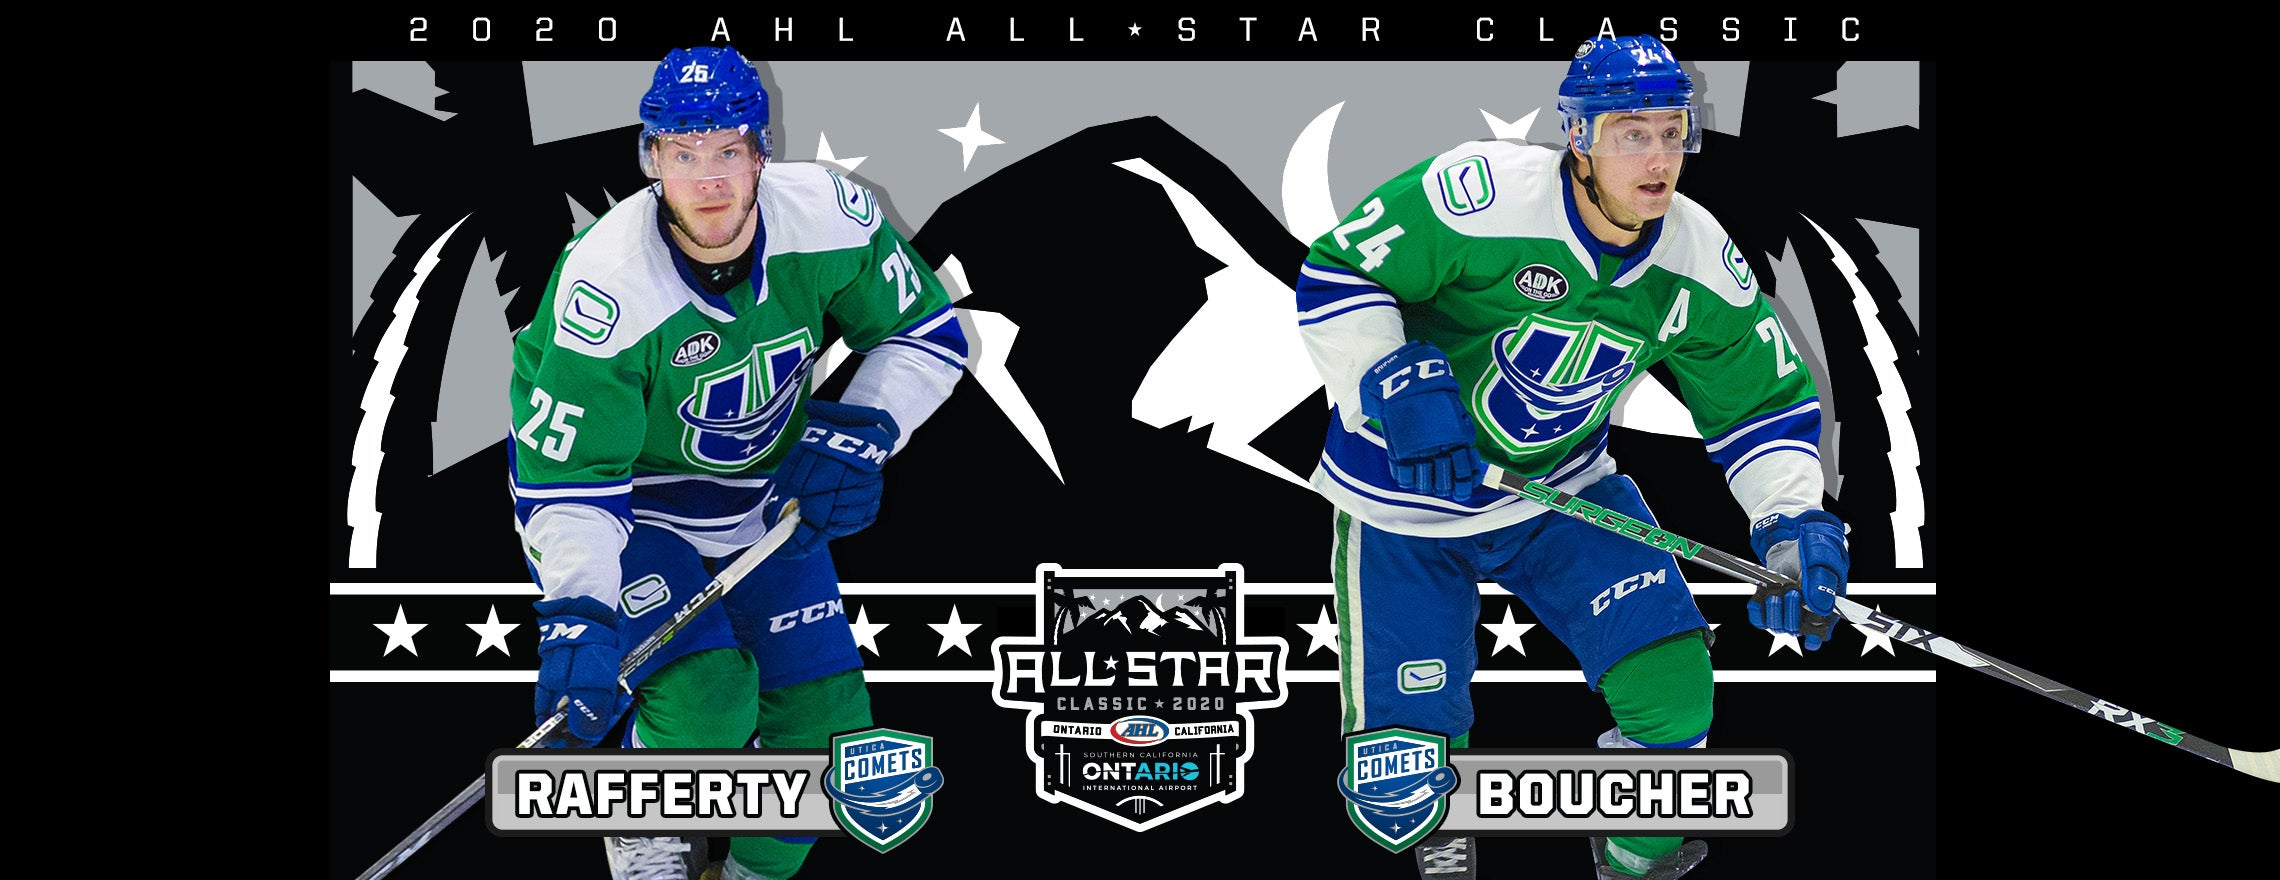 BOUCHER, RAFFERTY NAMED TO AHL ALL-STAR CLASSIC